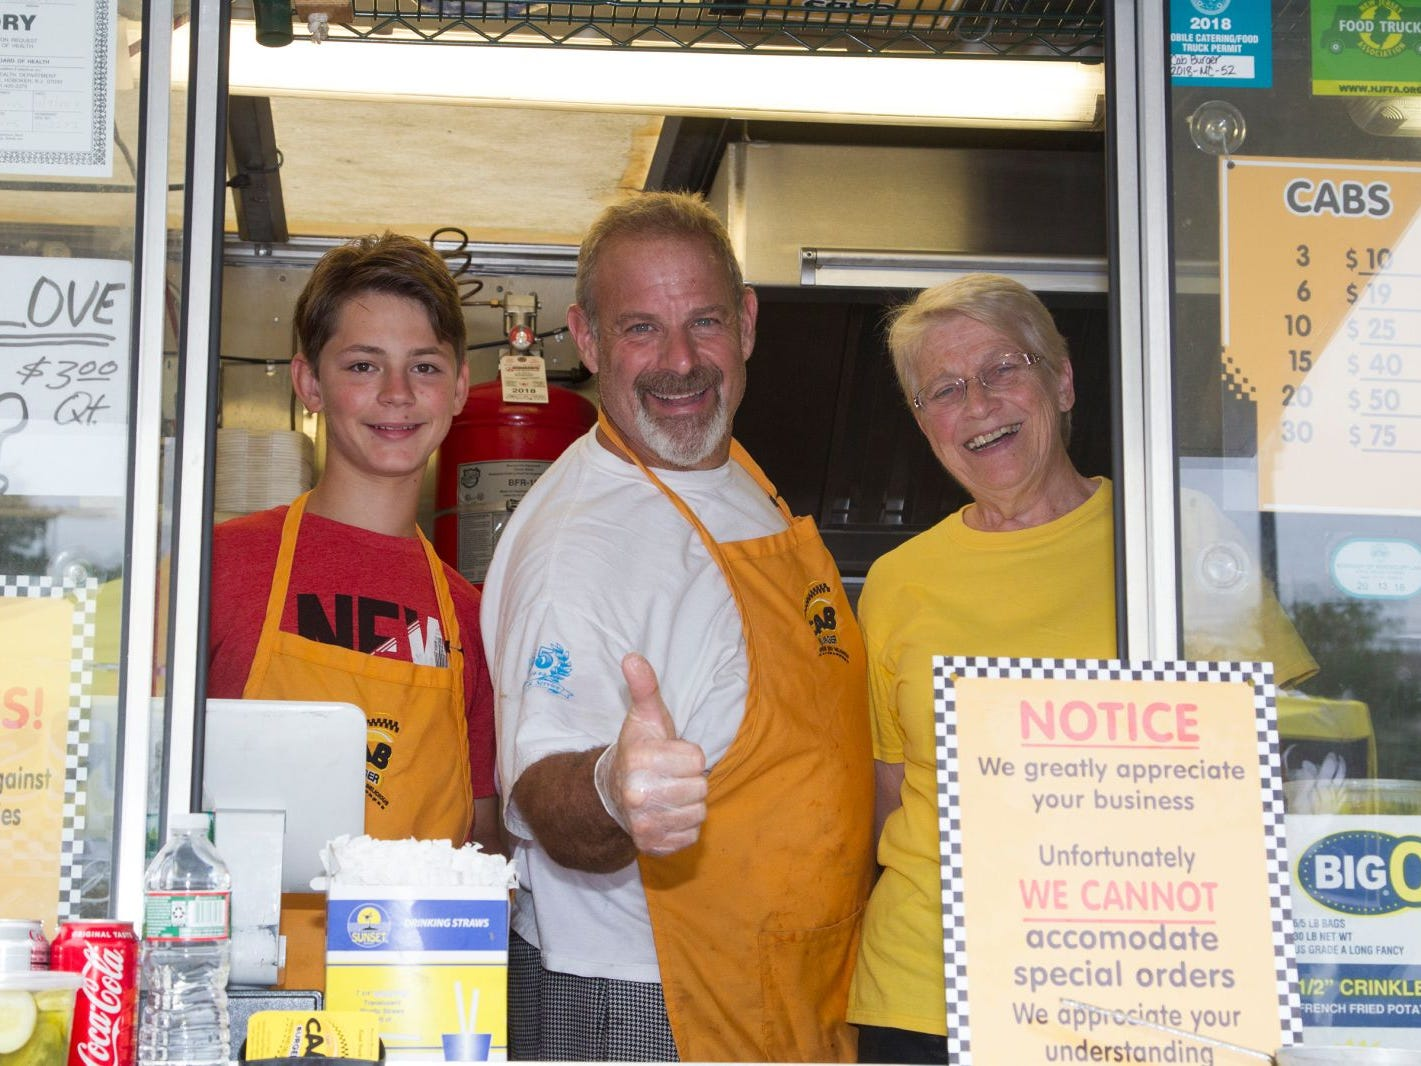 Taxi Cab Burger- Jesse, David and Susan. Paramus Food Truck Festival at Westfeld Garden State Plaza. 08/19/2018